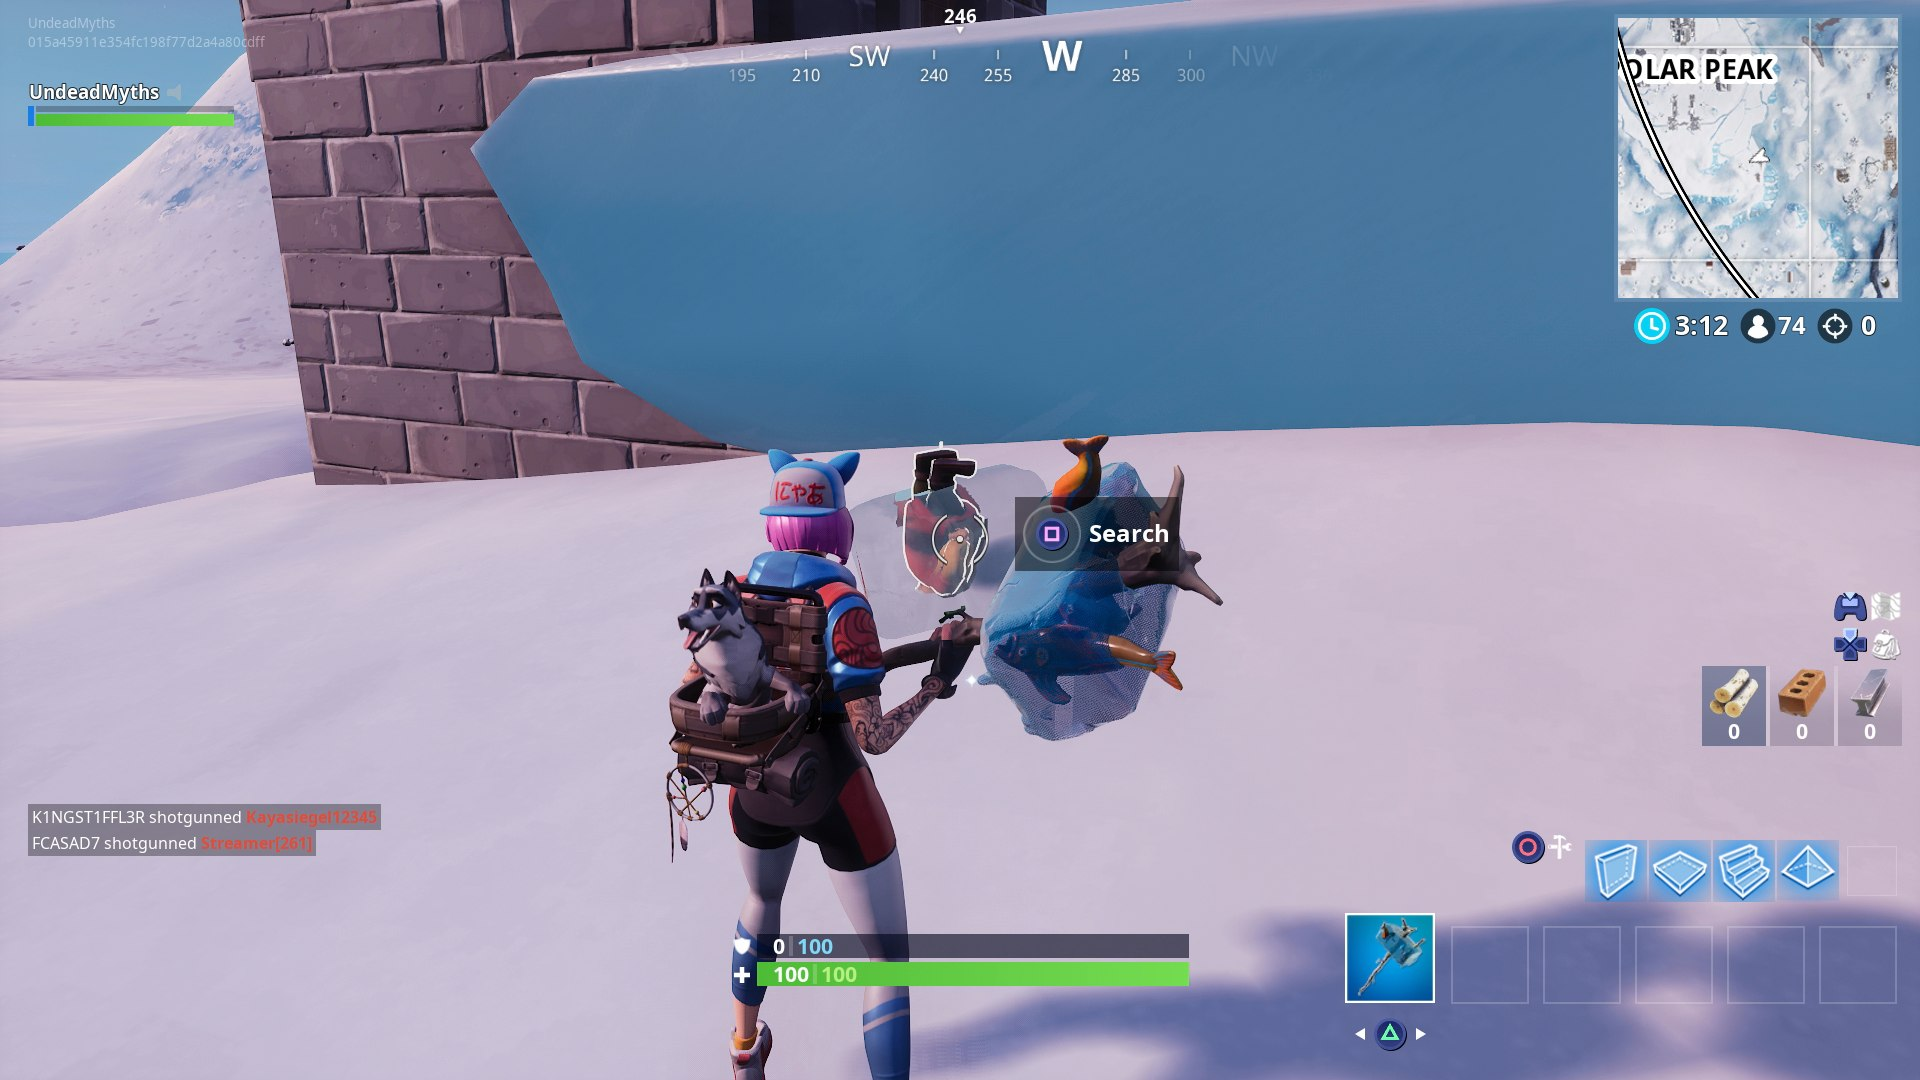 Fortnite Shop March 7 2019 Viveos Net - Plymouthicefestival org